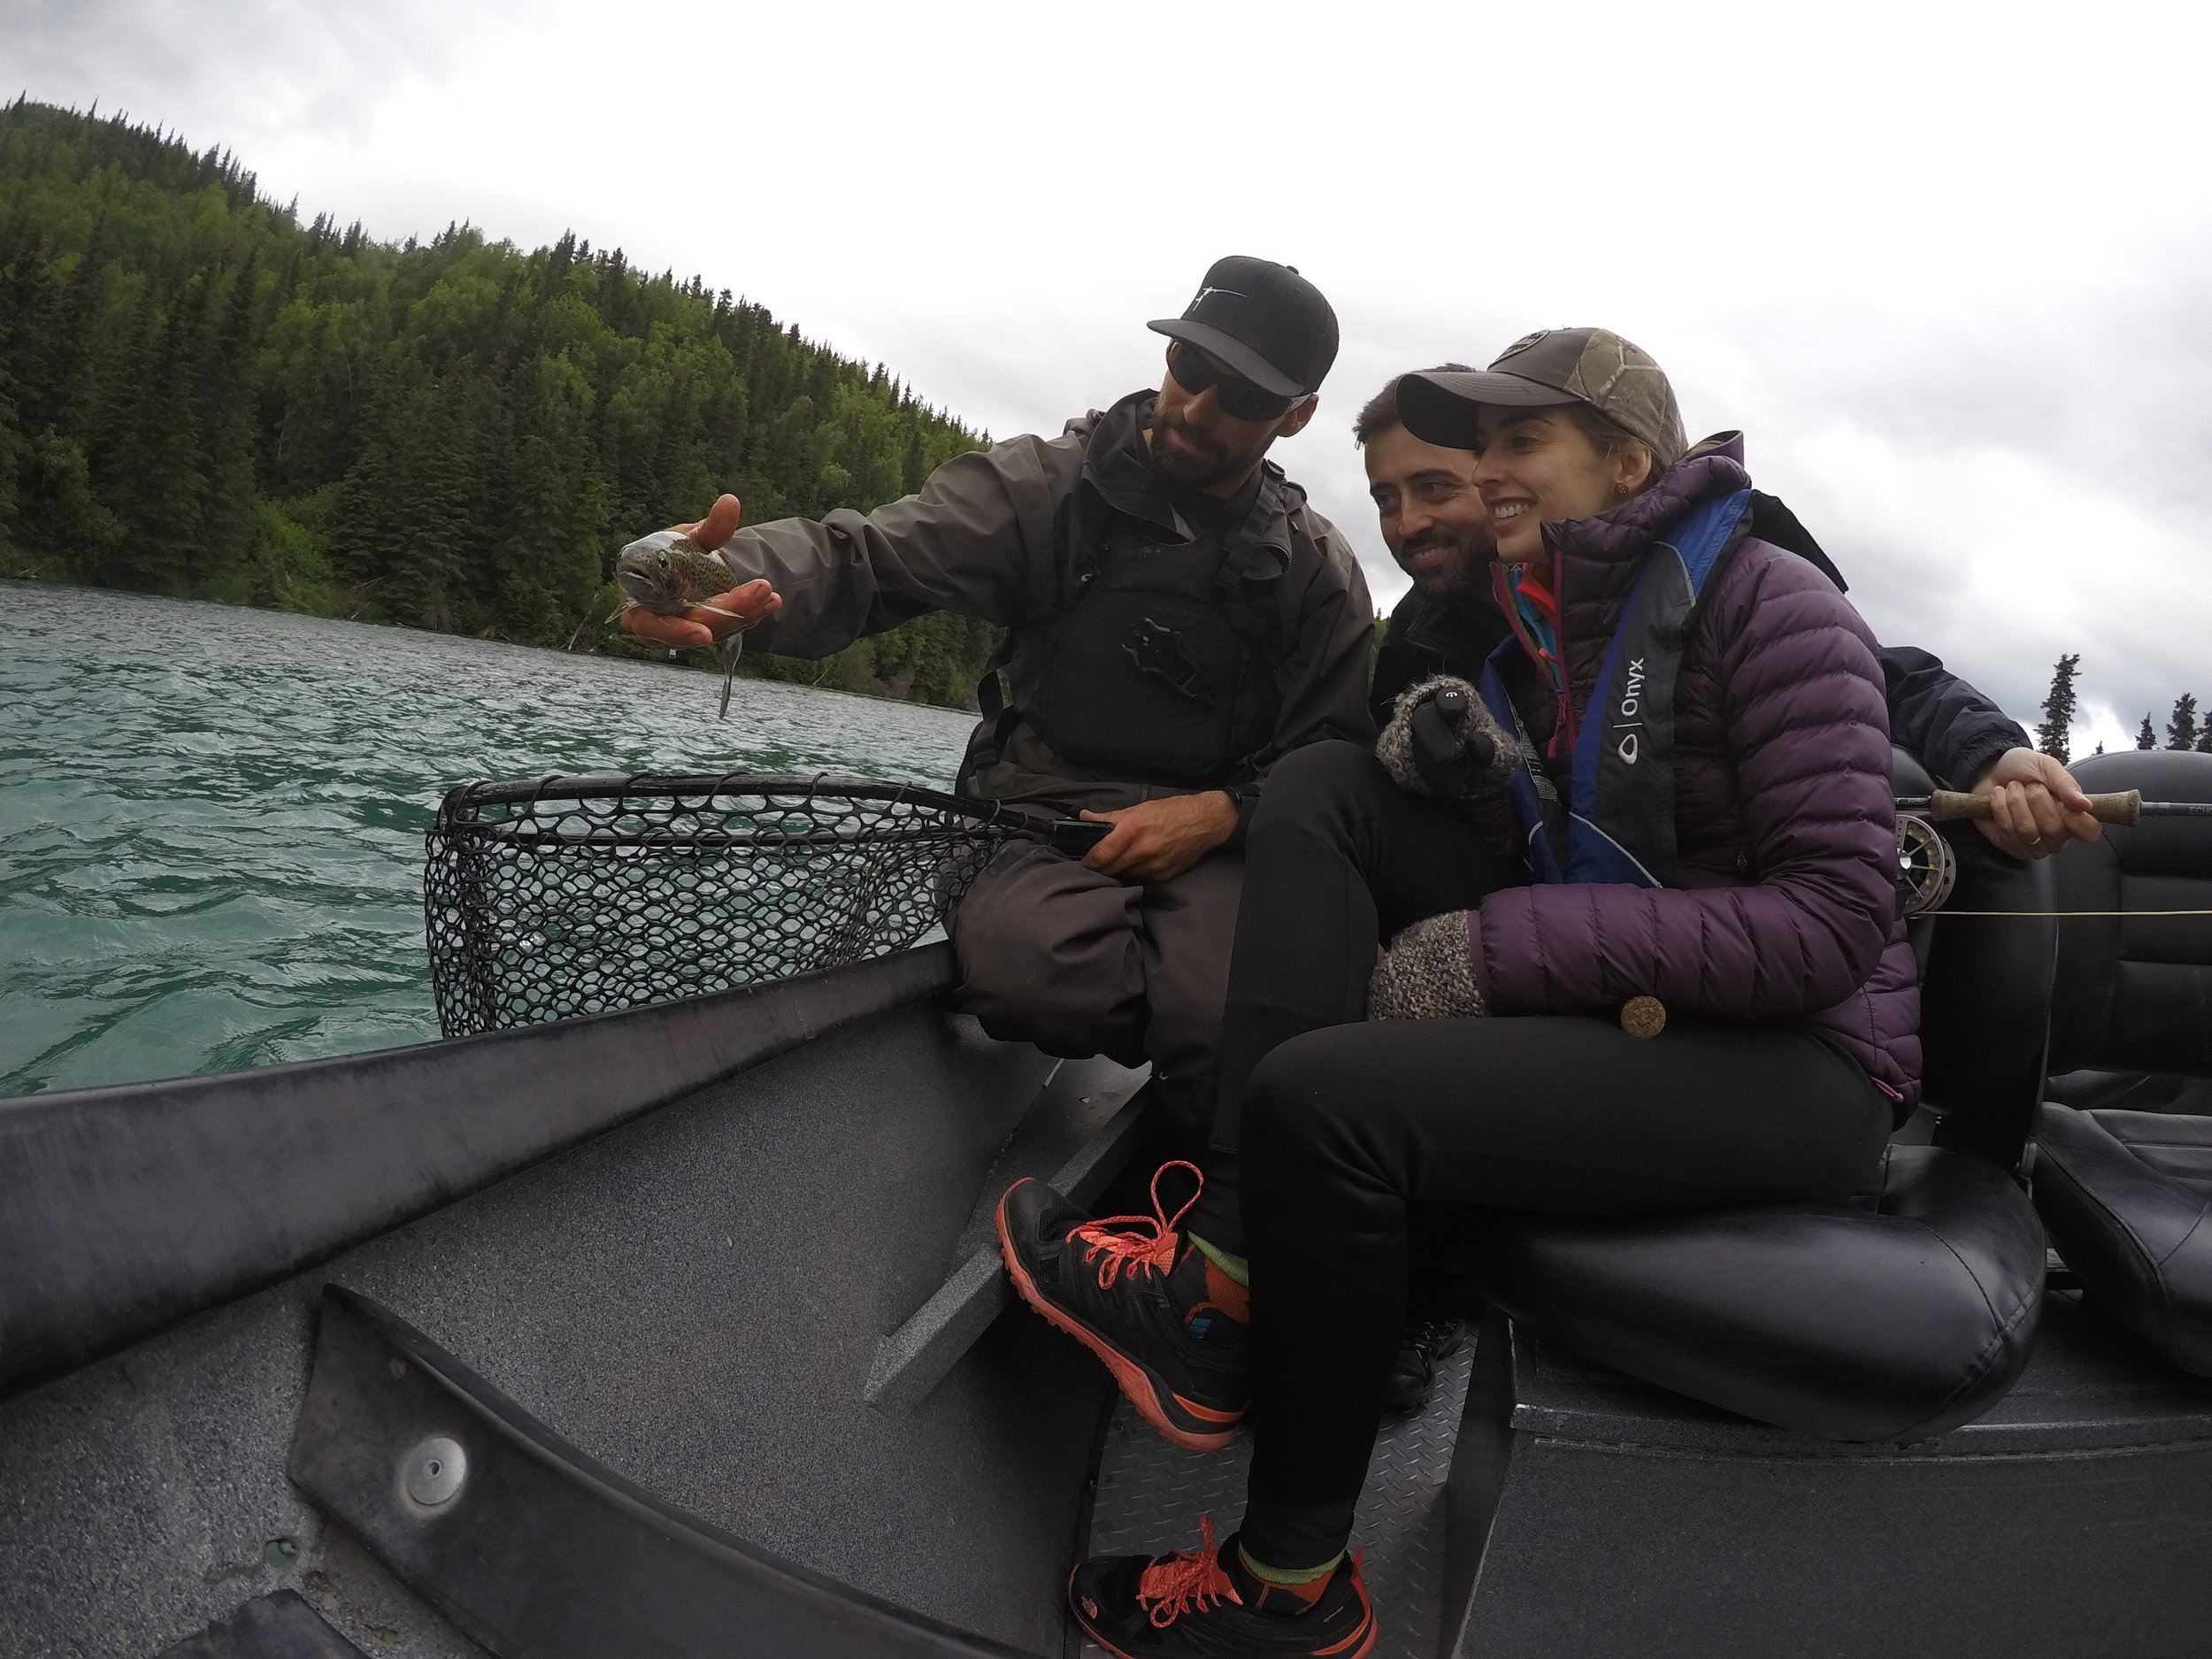 Our guests from Spain admiring a beautiful    Kenai River Rainbow    on their guided fishing trip.